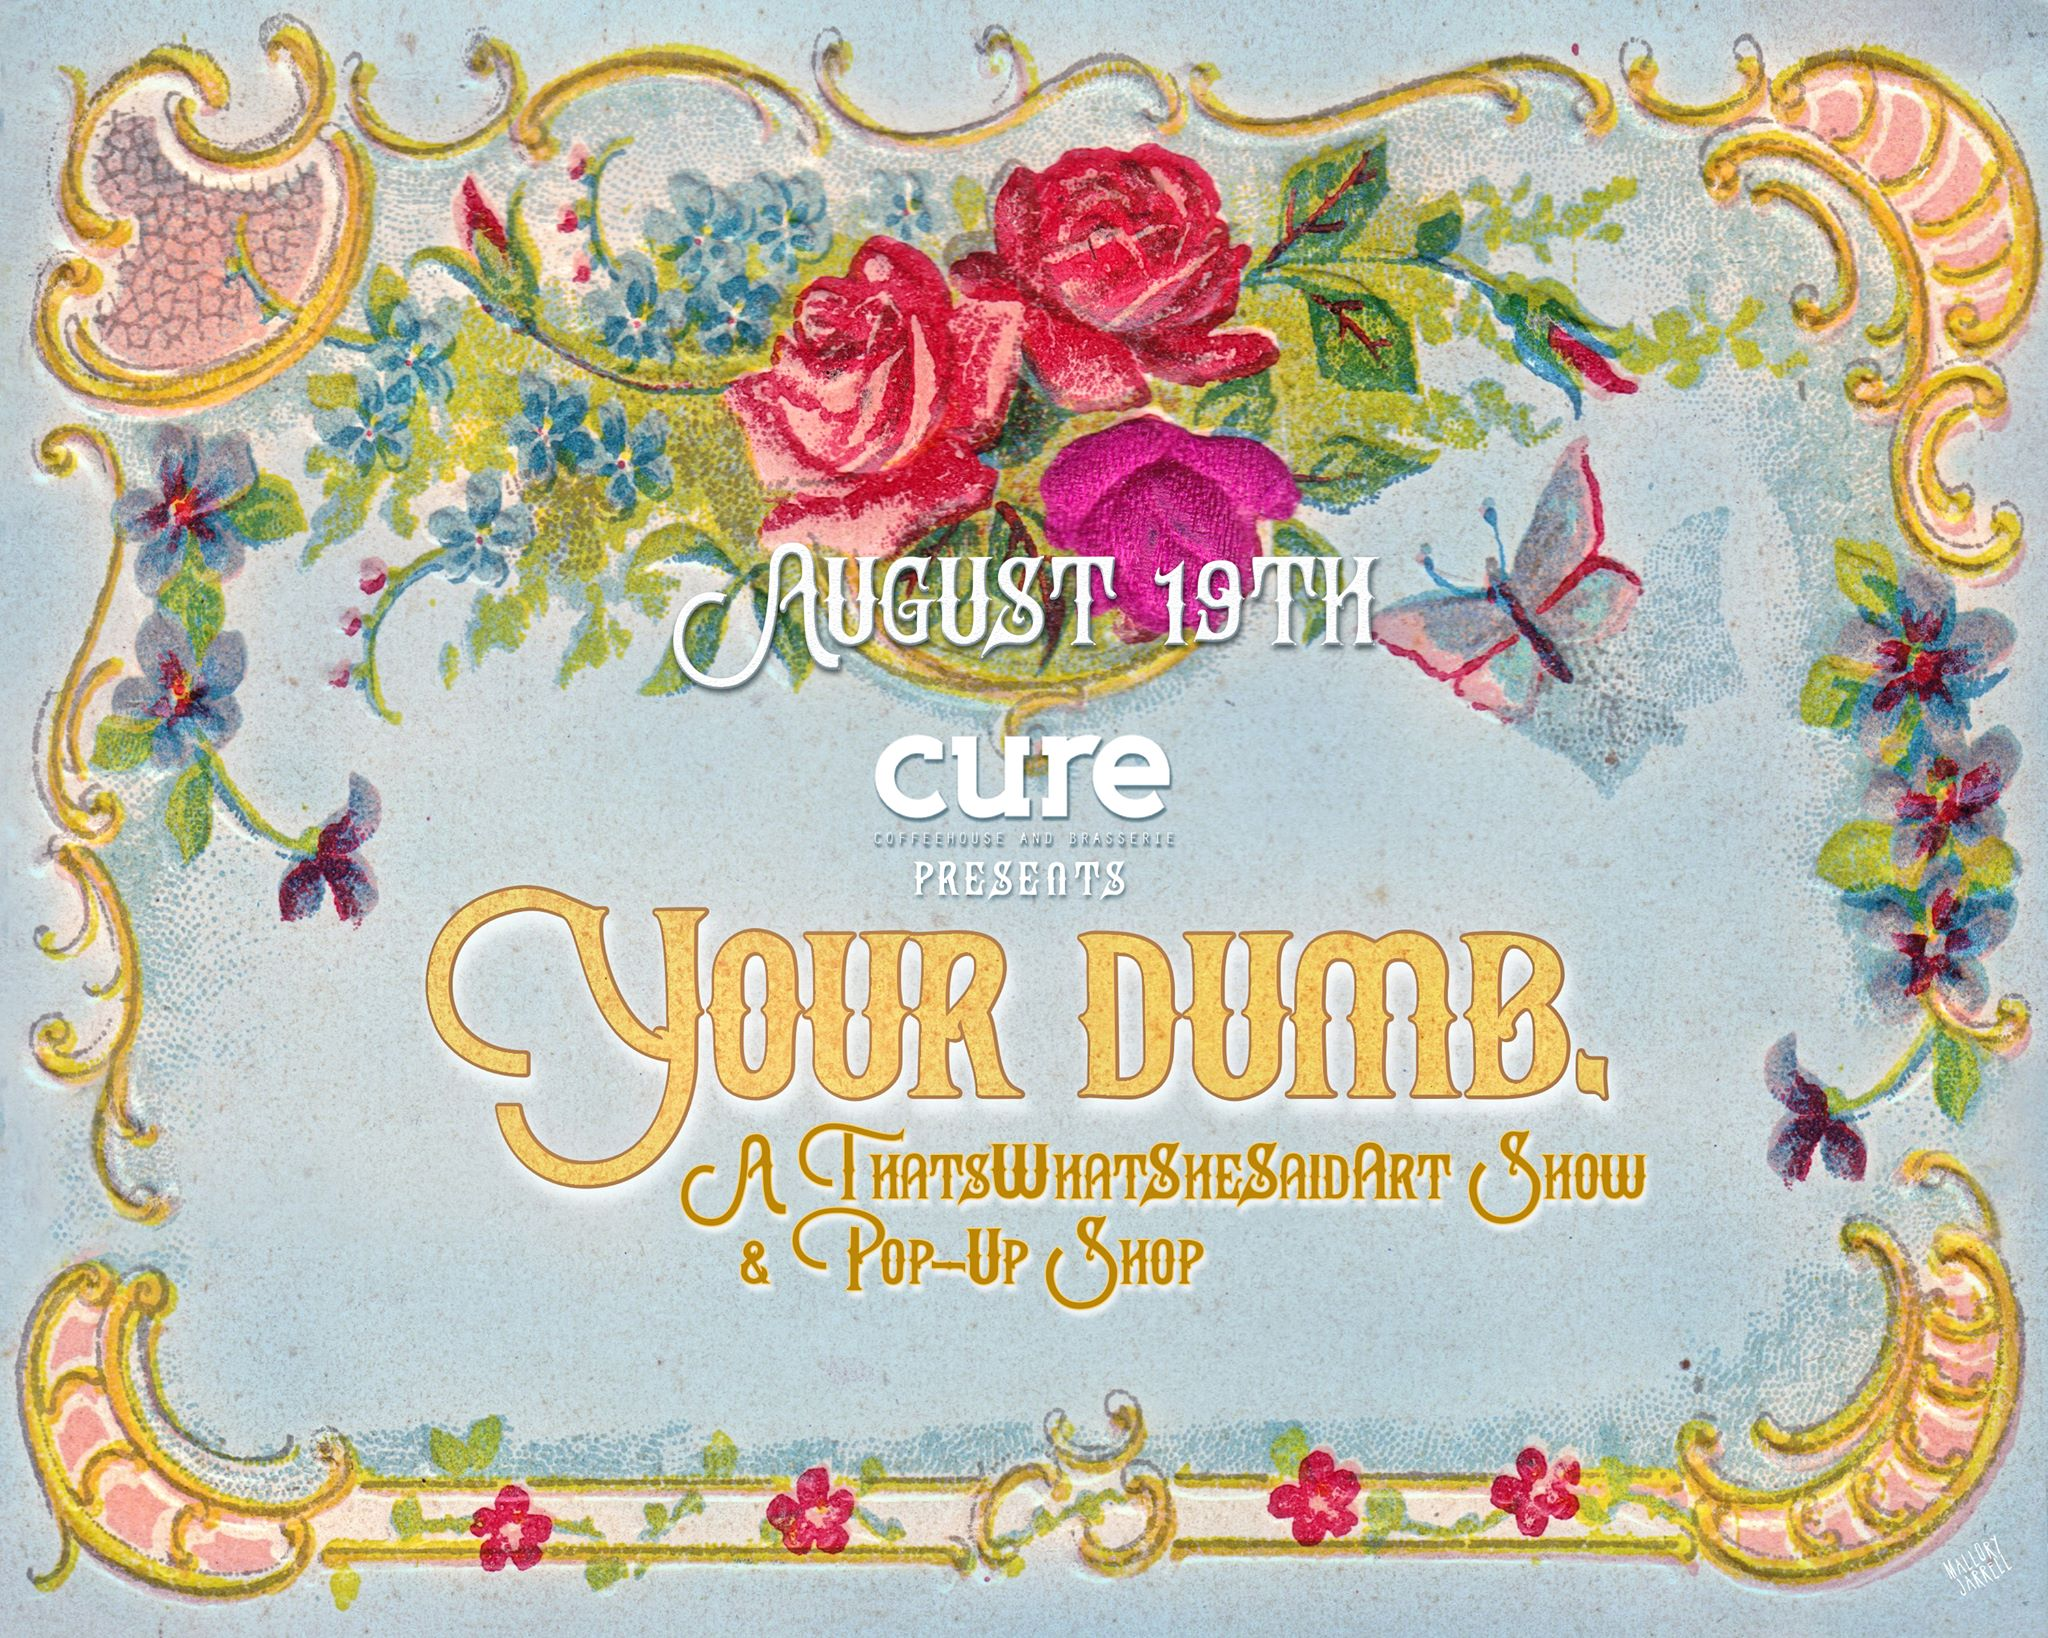 Cure 4 Aug 2017